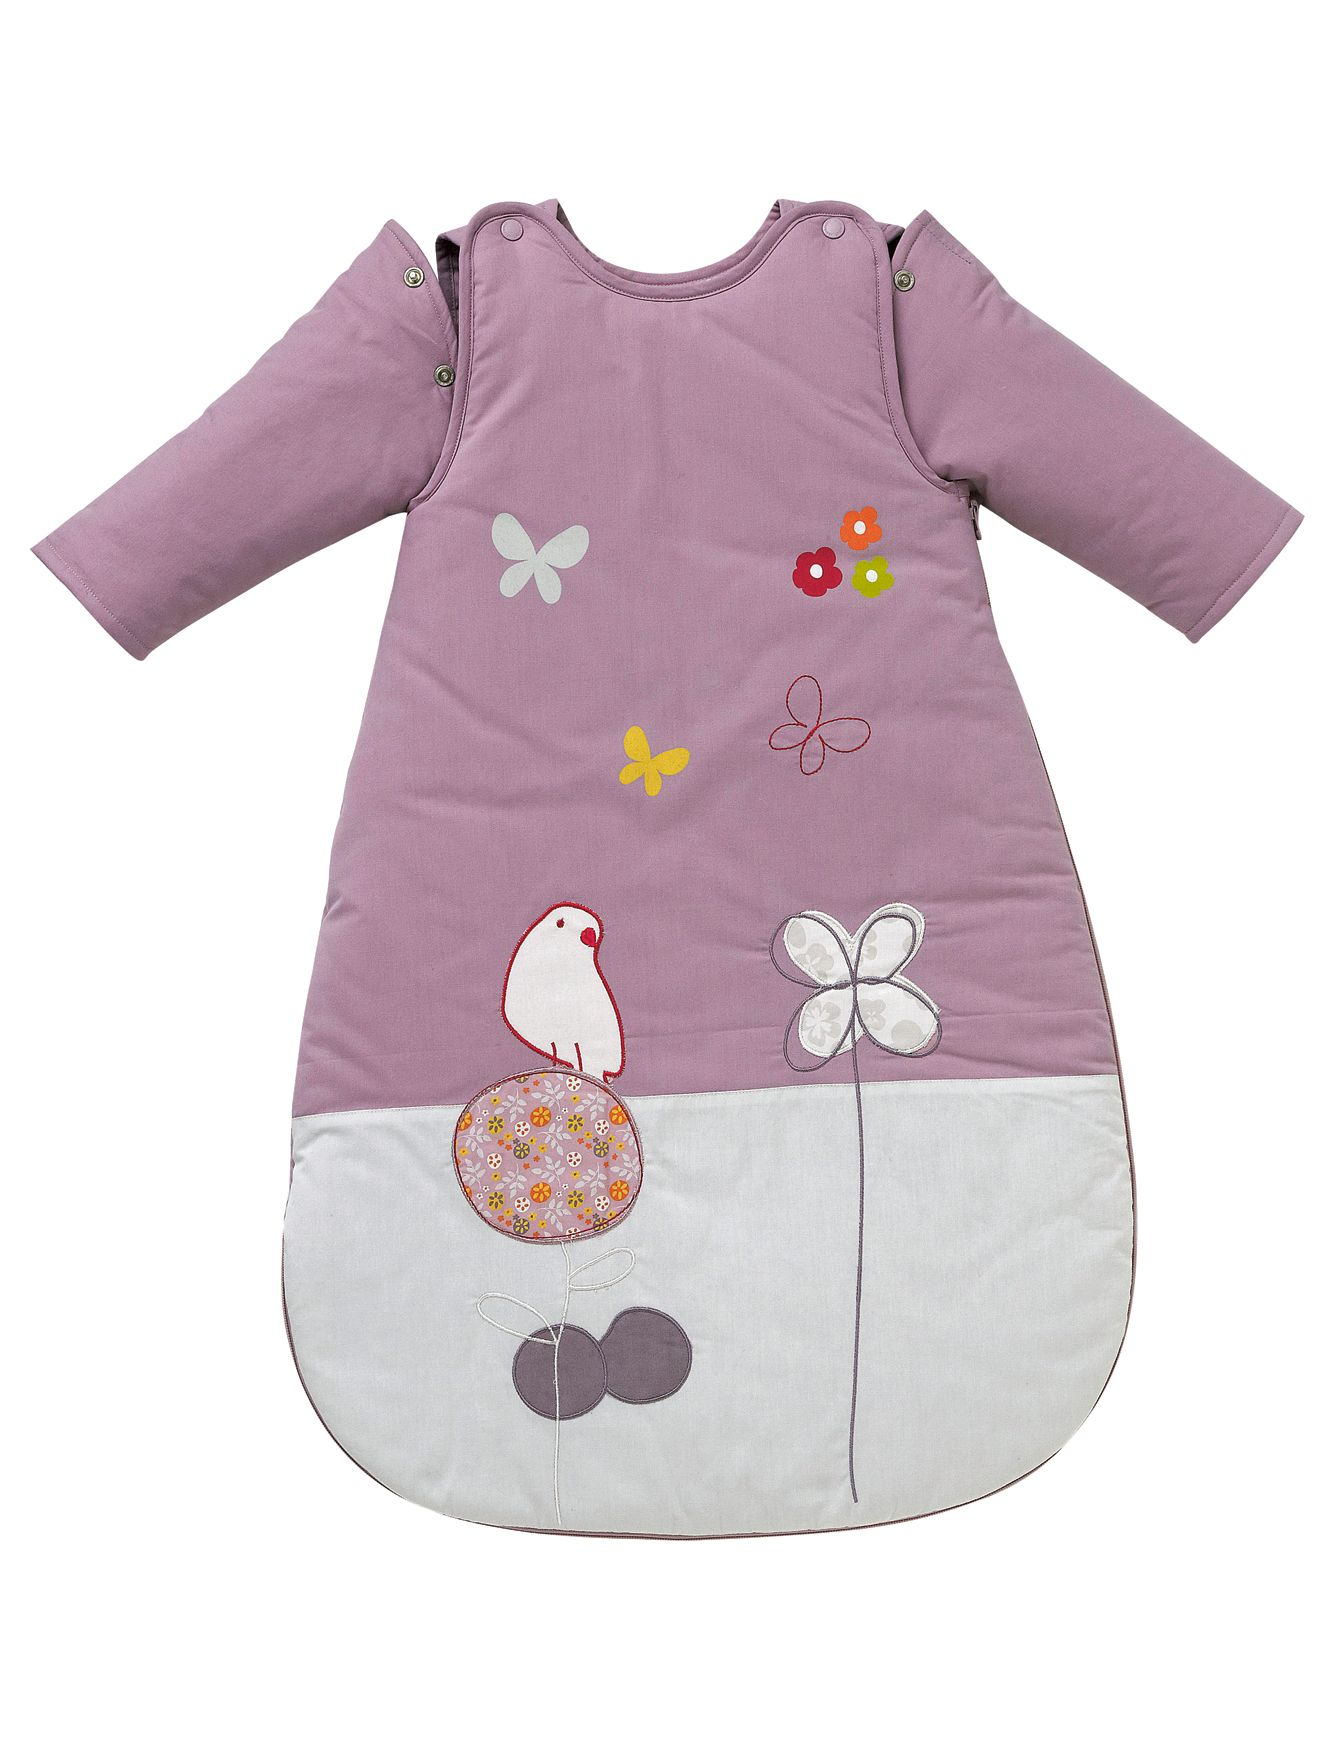 Baby Sleep Sack Uk Nesting Sleep Bag With Detachable Sleeves Nursery